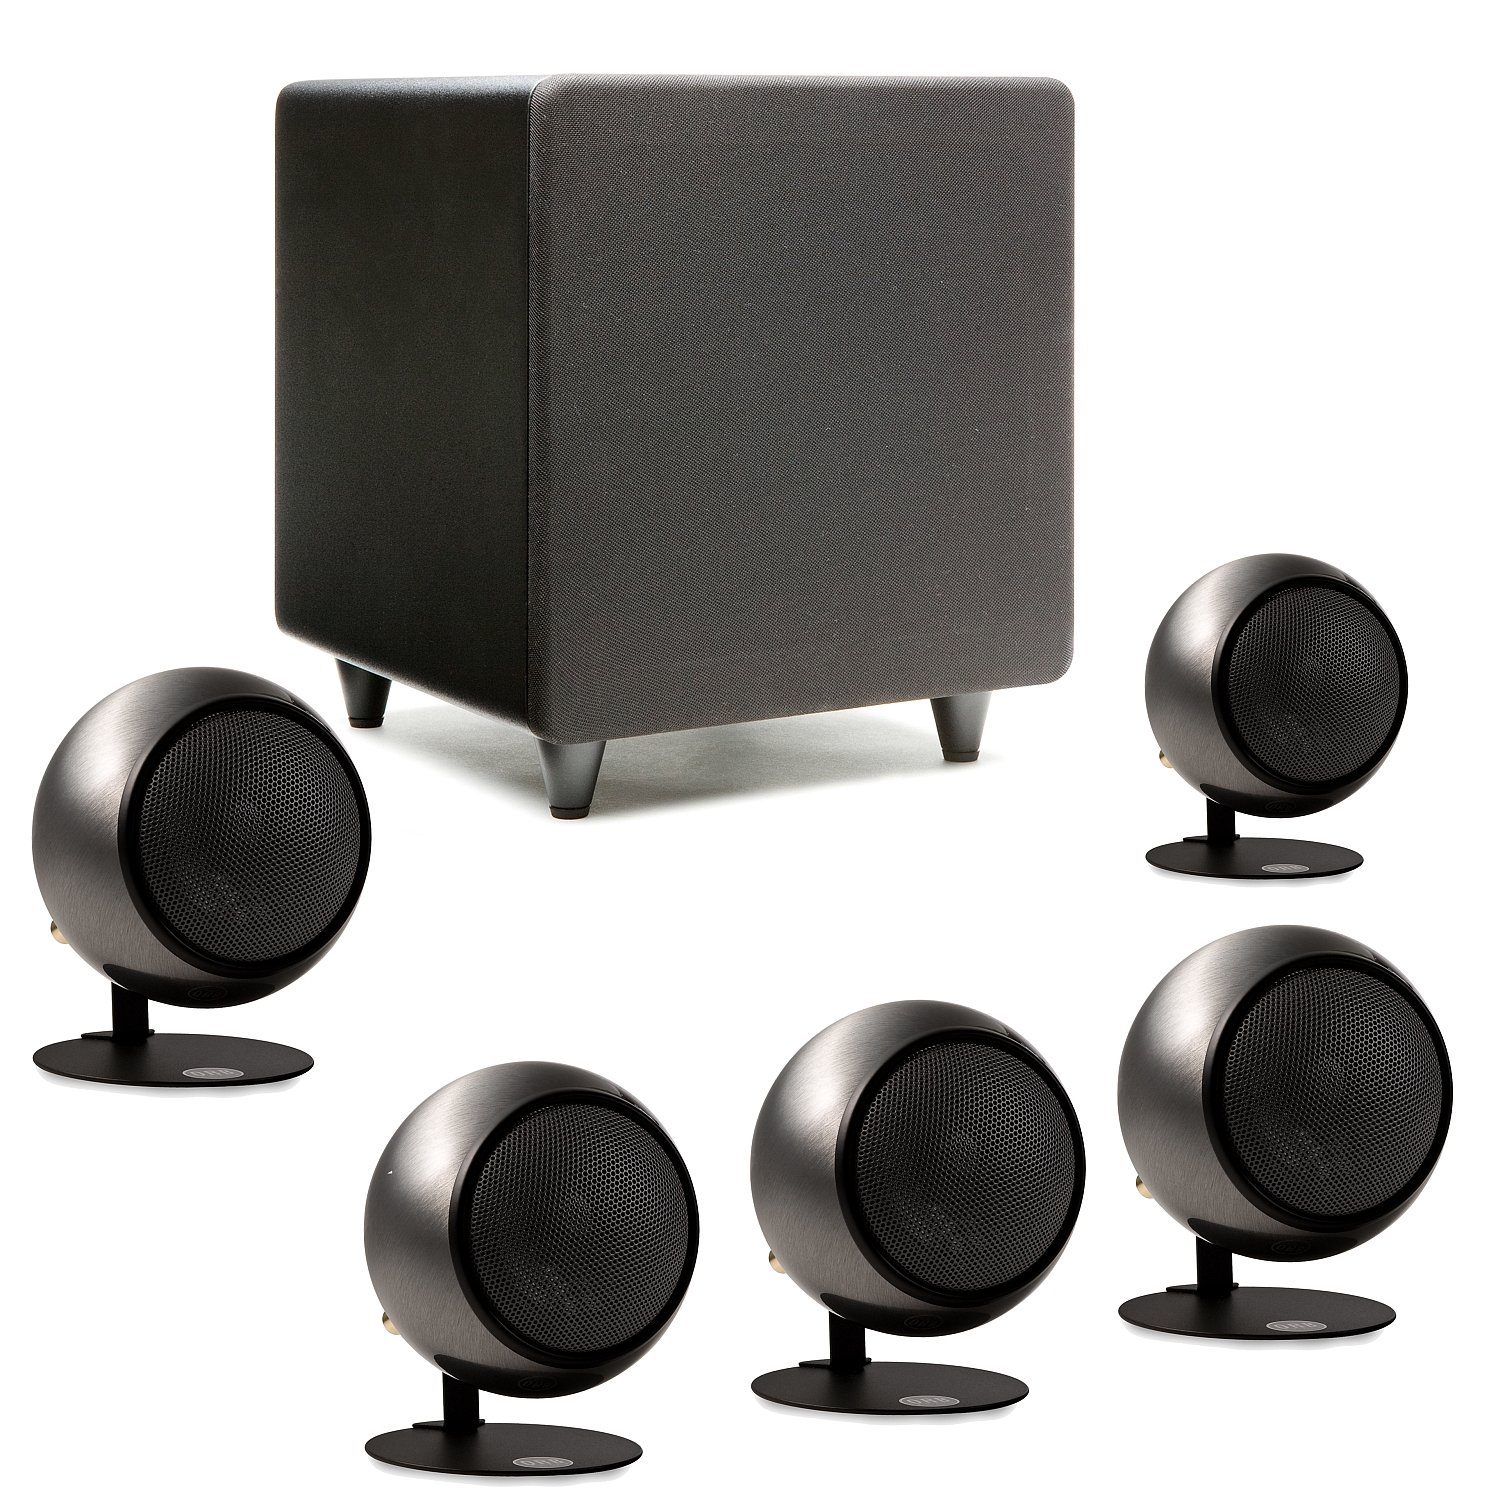 Orb Audio Mini 5.1 Home Theater Speaker System (Polished Steel) by Orb Audio LLC